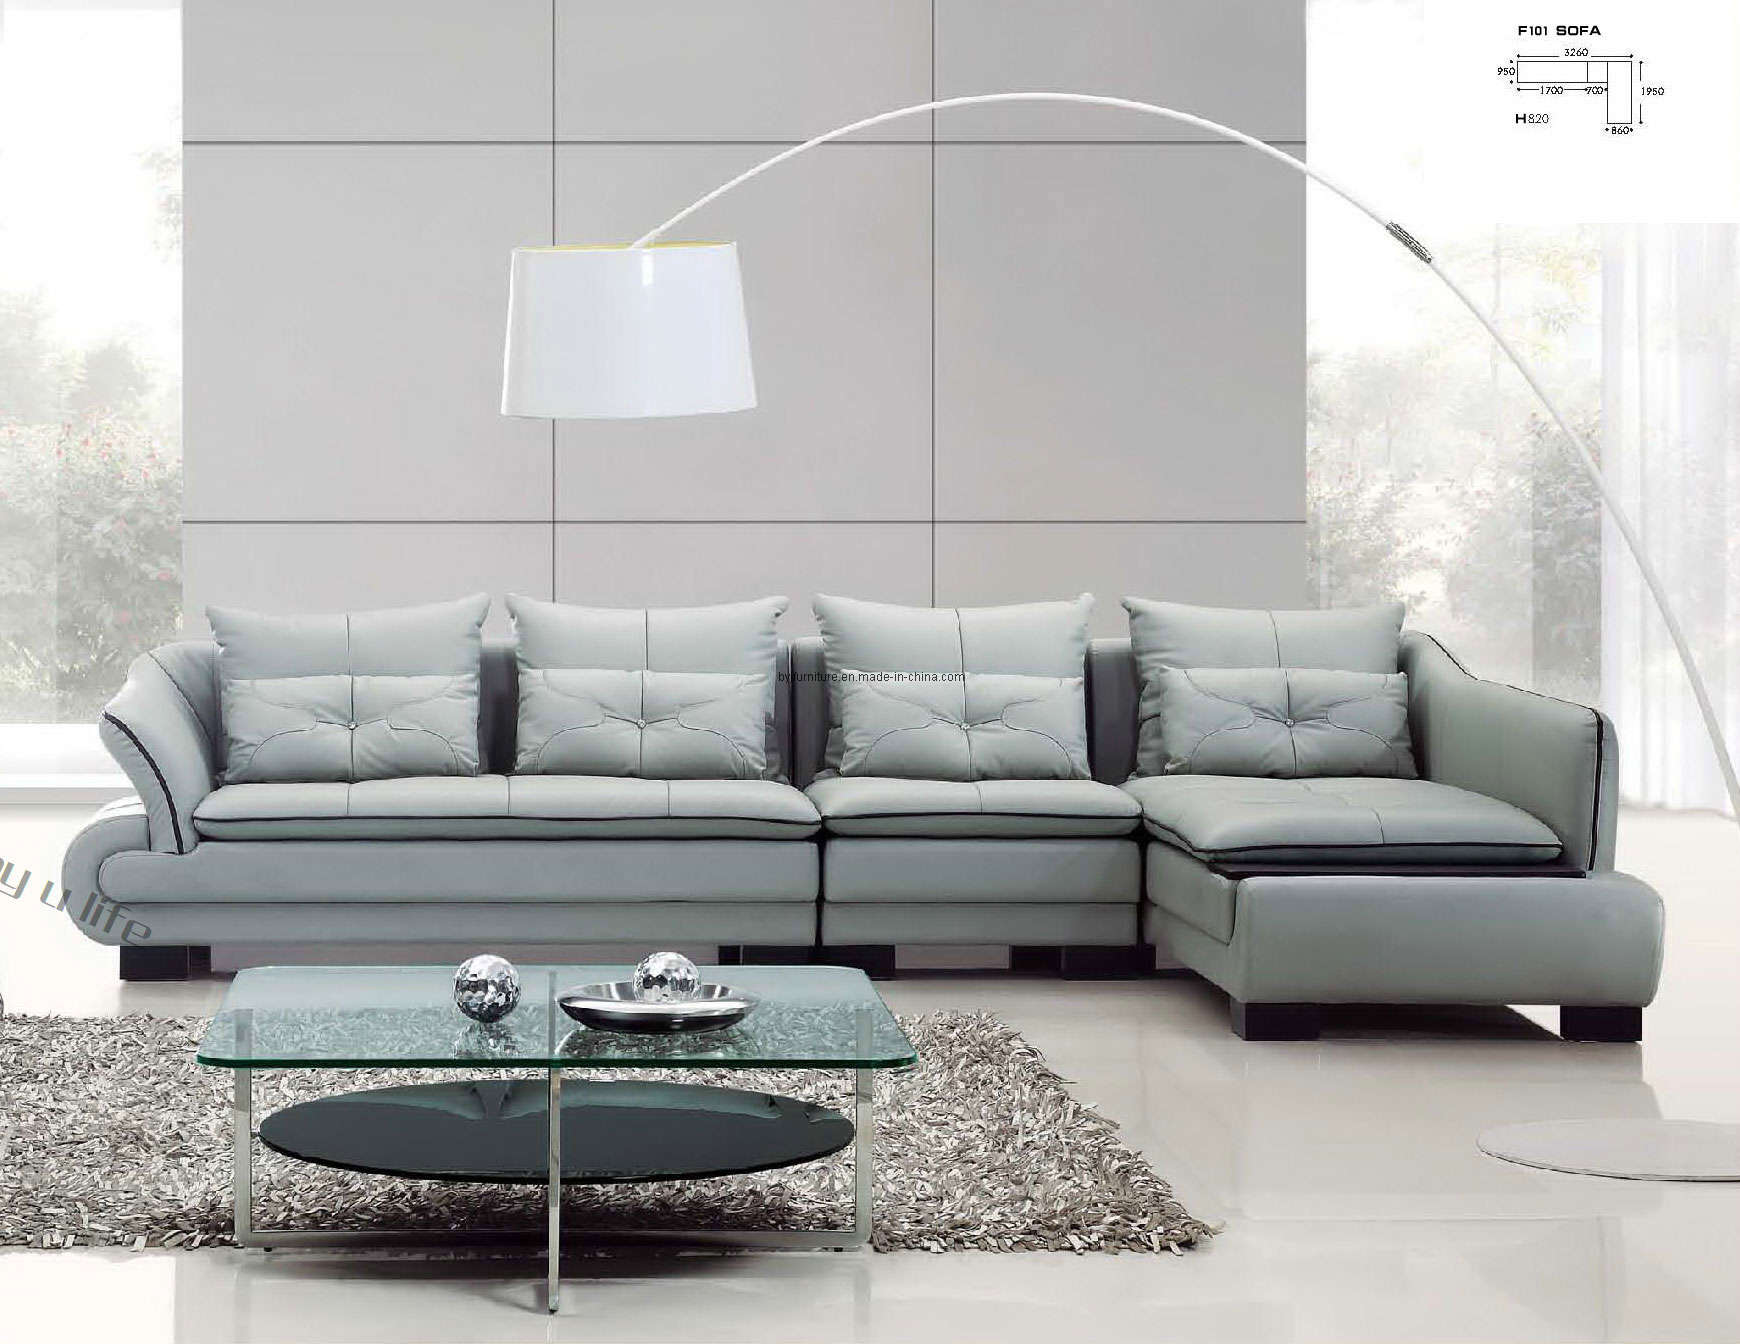 italian sofas simple living. VIEW IN GALLERY Fresh Idea Contemporary Leather Sofa Sets Amazing Inspiration Modern Sofas A Italian Simple Living X